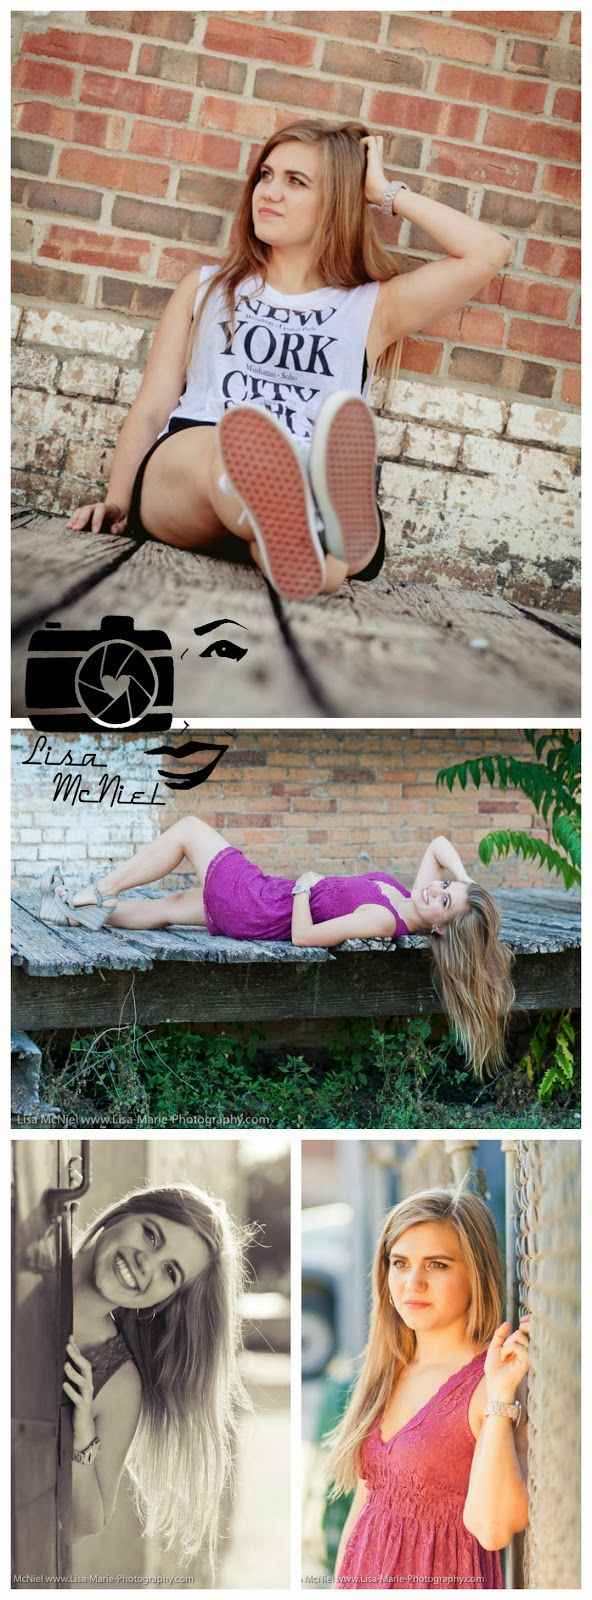 senior pictures ideas for girls, urban, field, North Texas Photographer, Dallas, click the pic to see more, Lisa McNiel